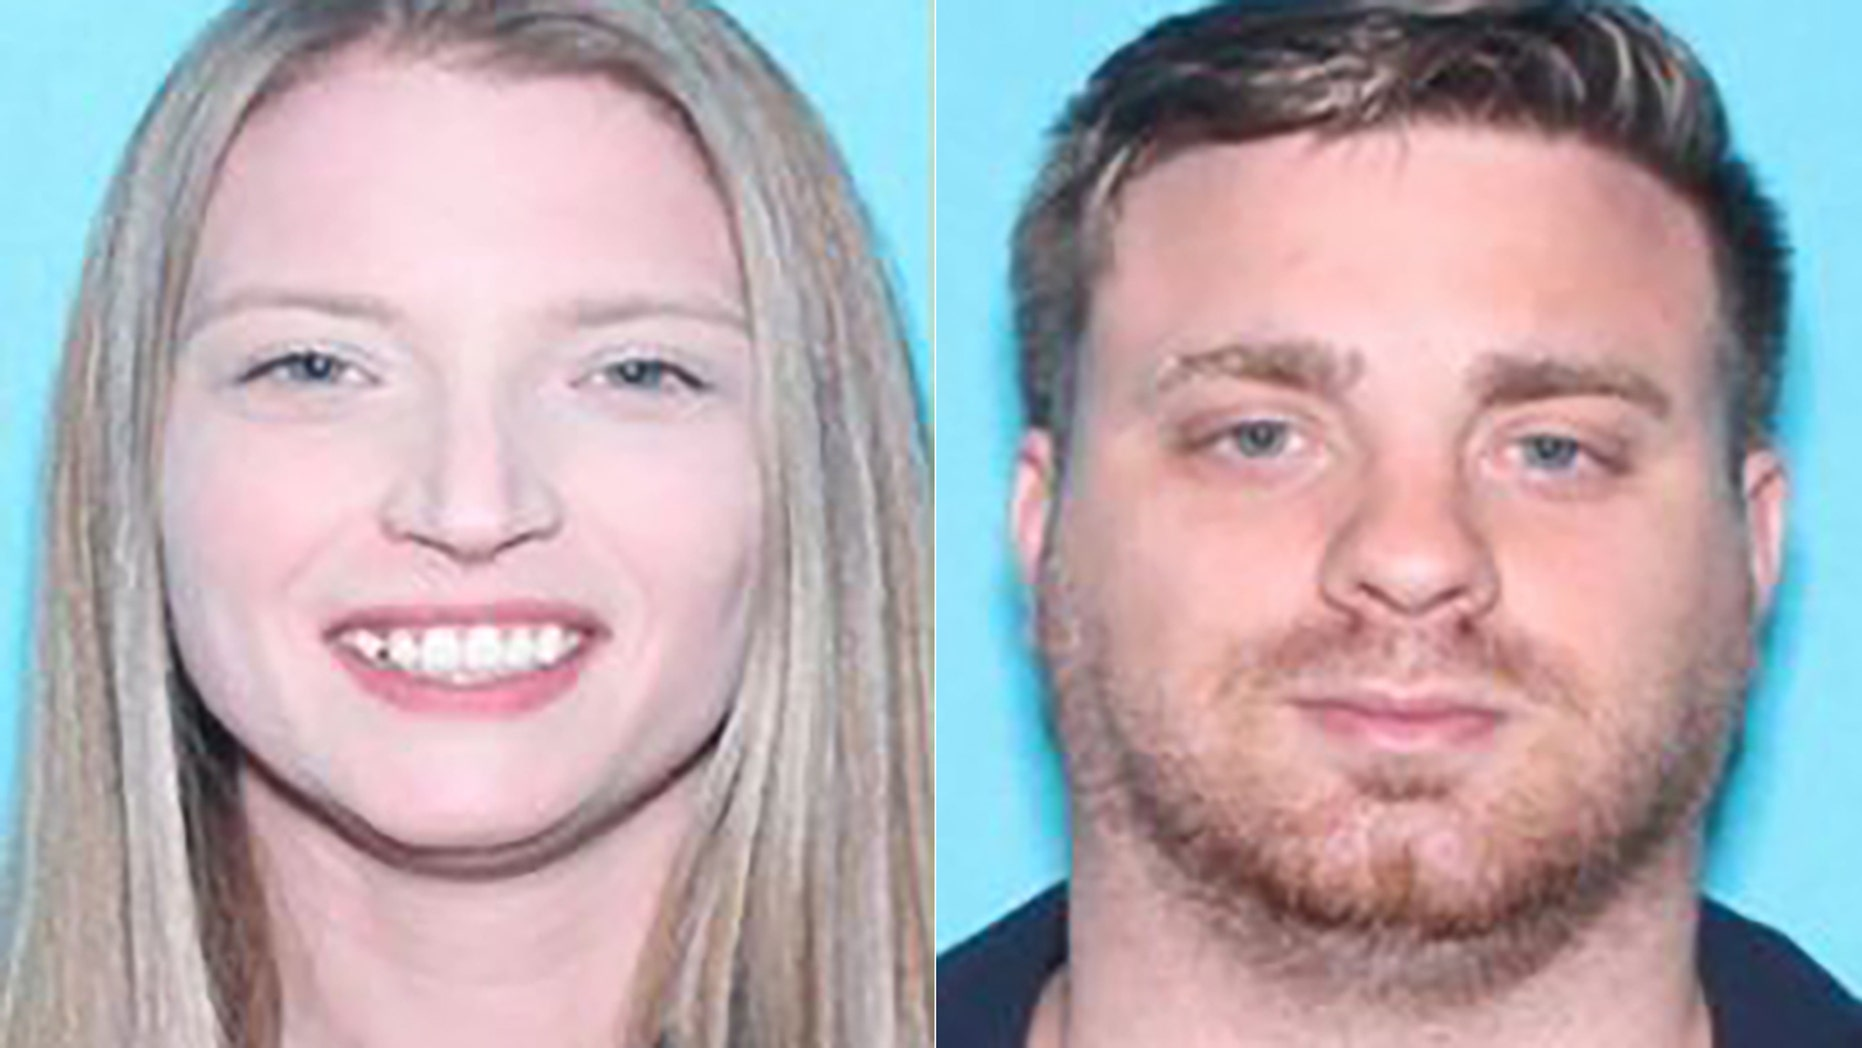 Jenna Scott, 28, and Michael Swearingin, 32, were discovered dead in shallow graves.